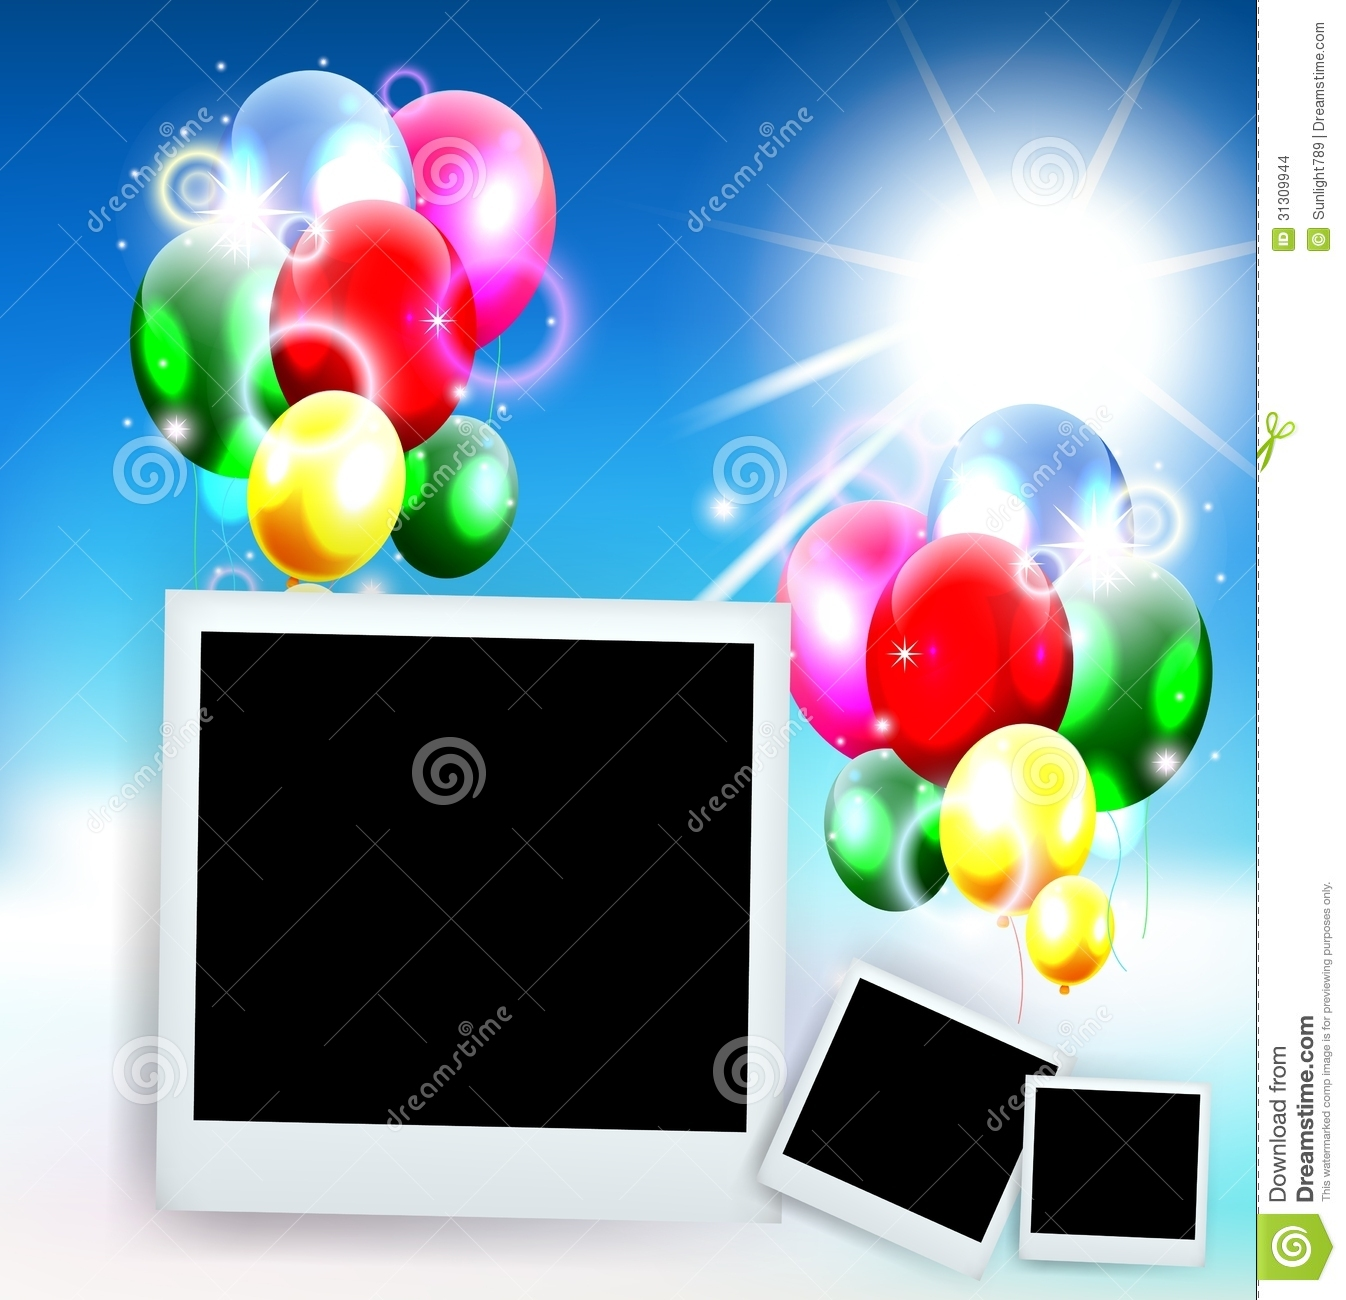 ballons avec la photo de cadre pour le fond d 39 anniversaire images stock image 31309944. Black Bedroom Furniture Sets. Home Design Ideas